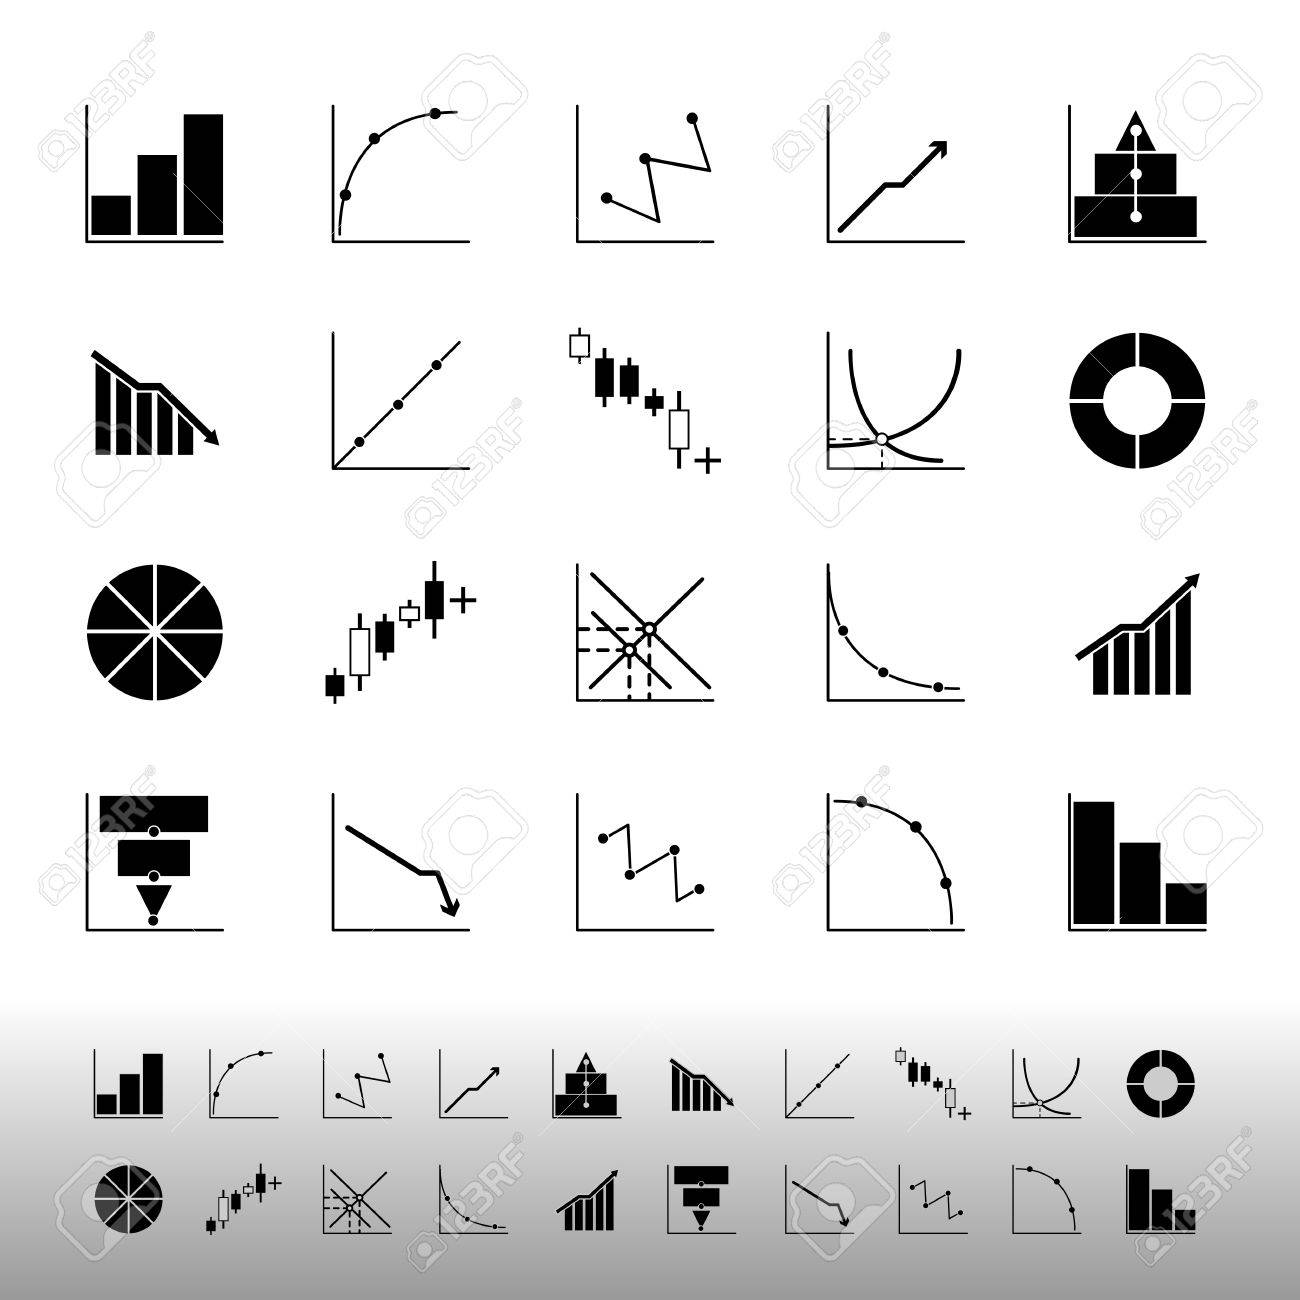 Set of diagram and graph icons on white background, stock vector - 25127926